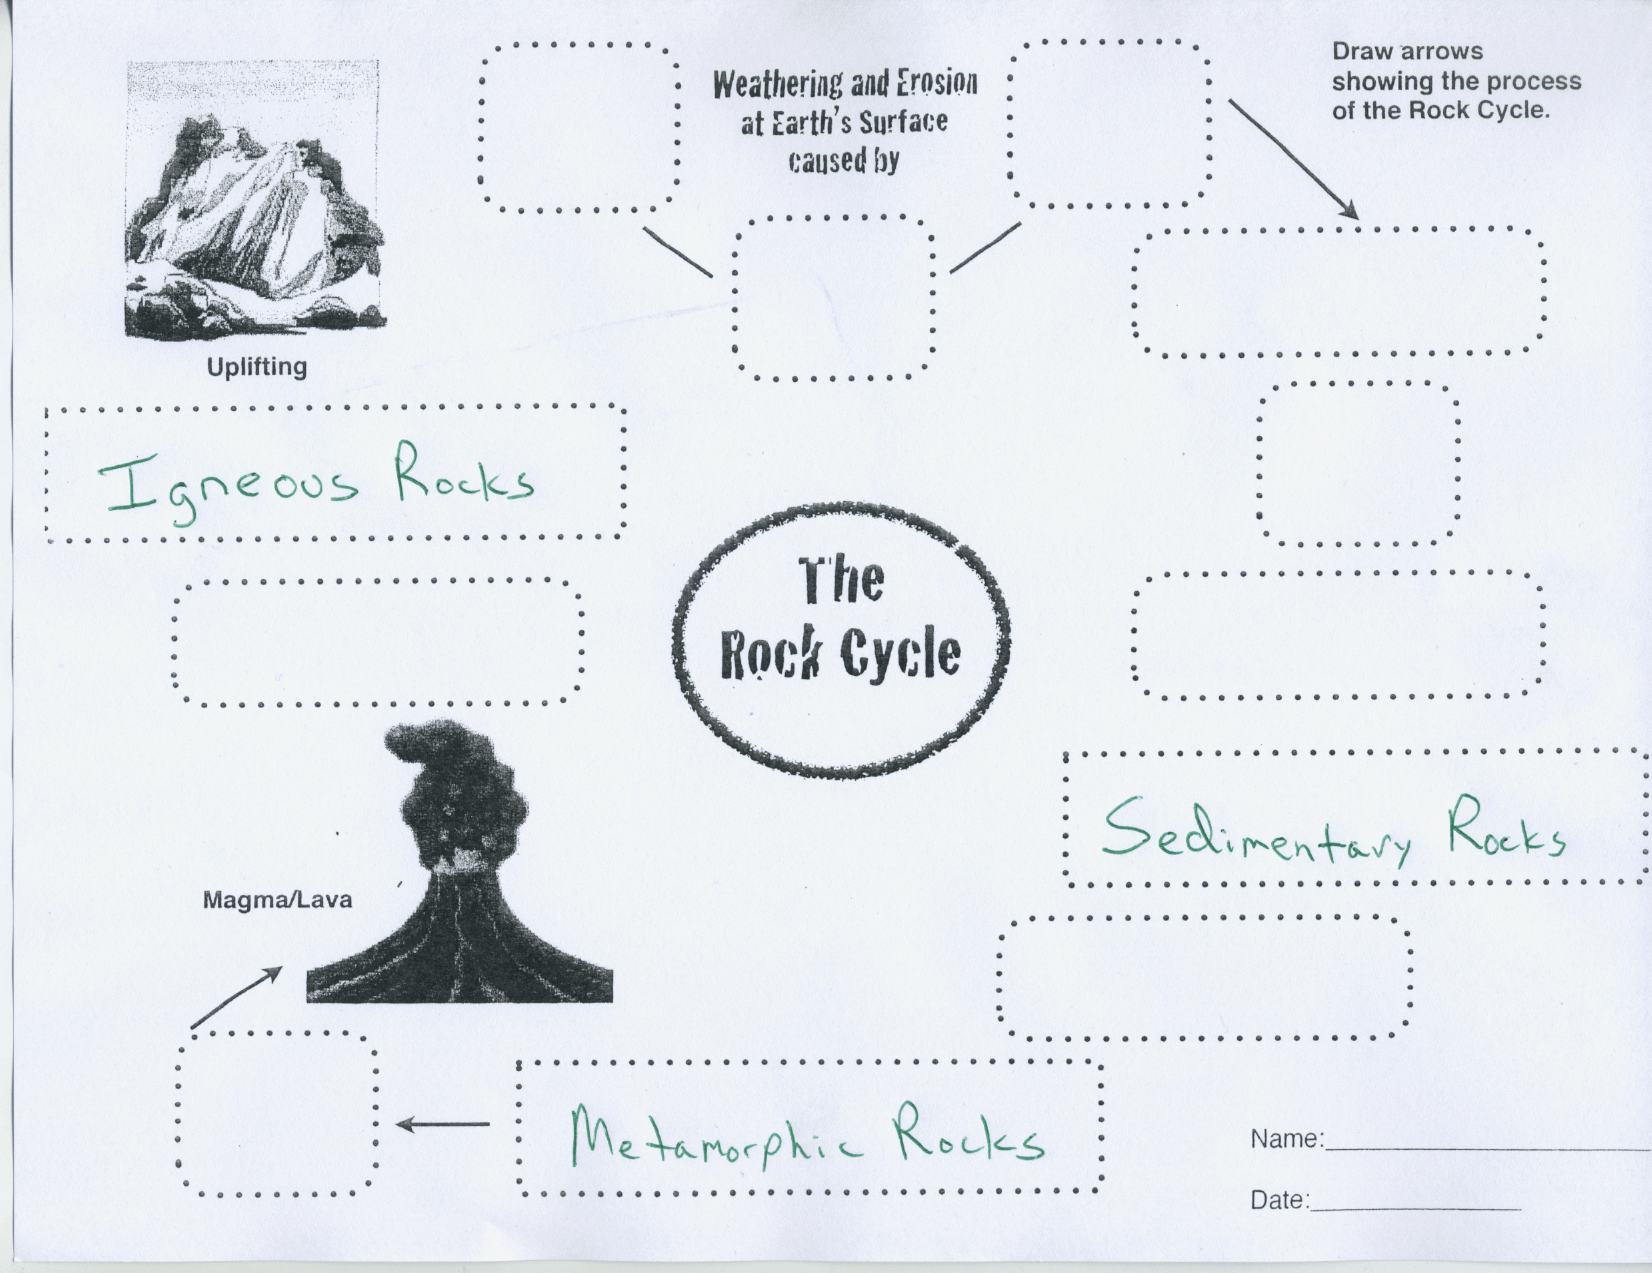 Unit 09 Rock Cycle Diagram